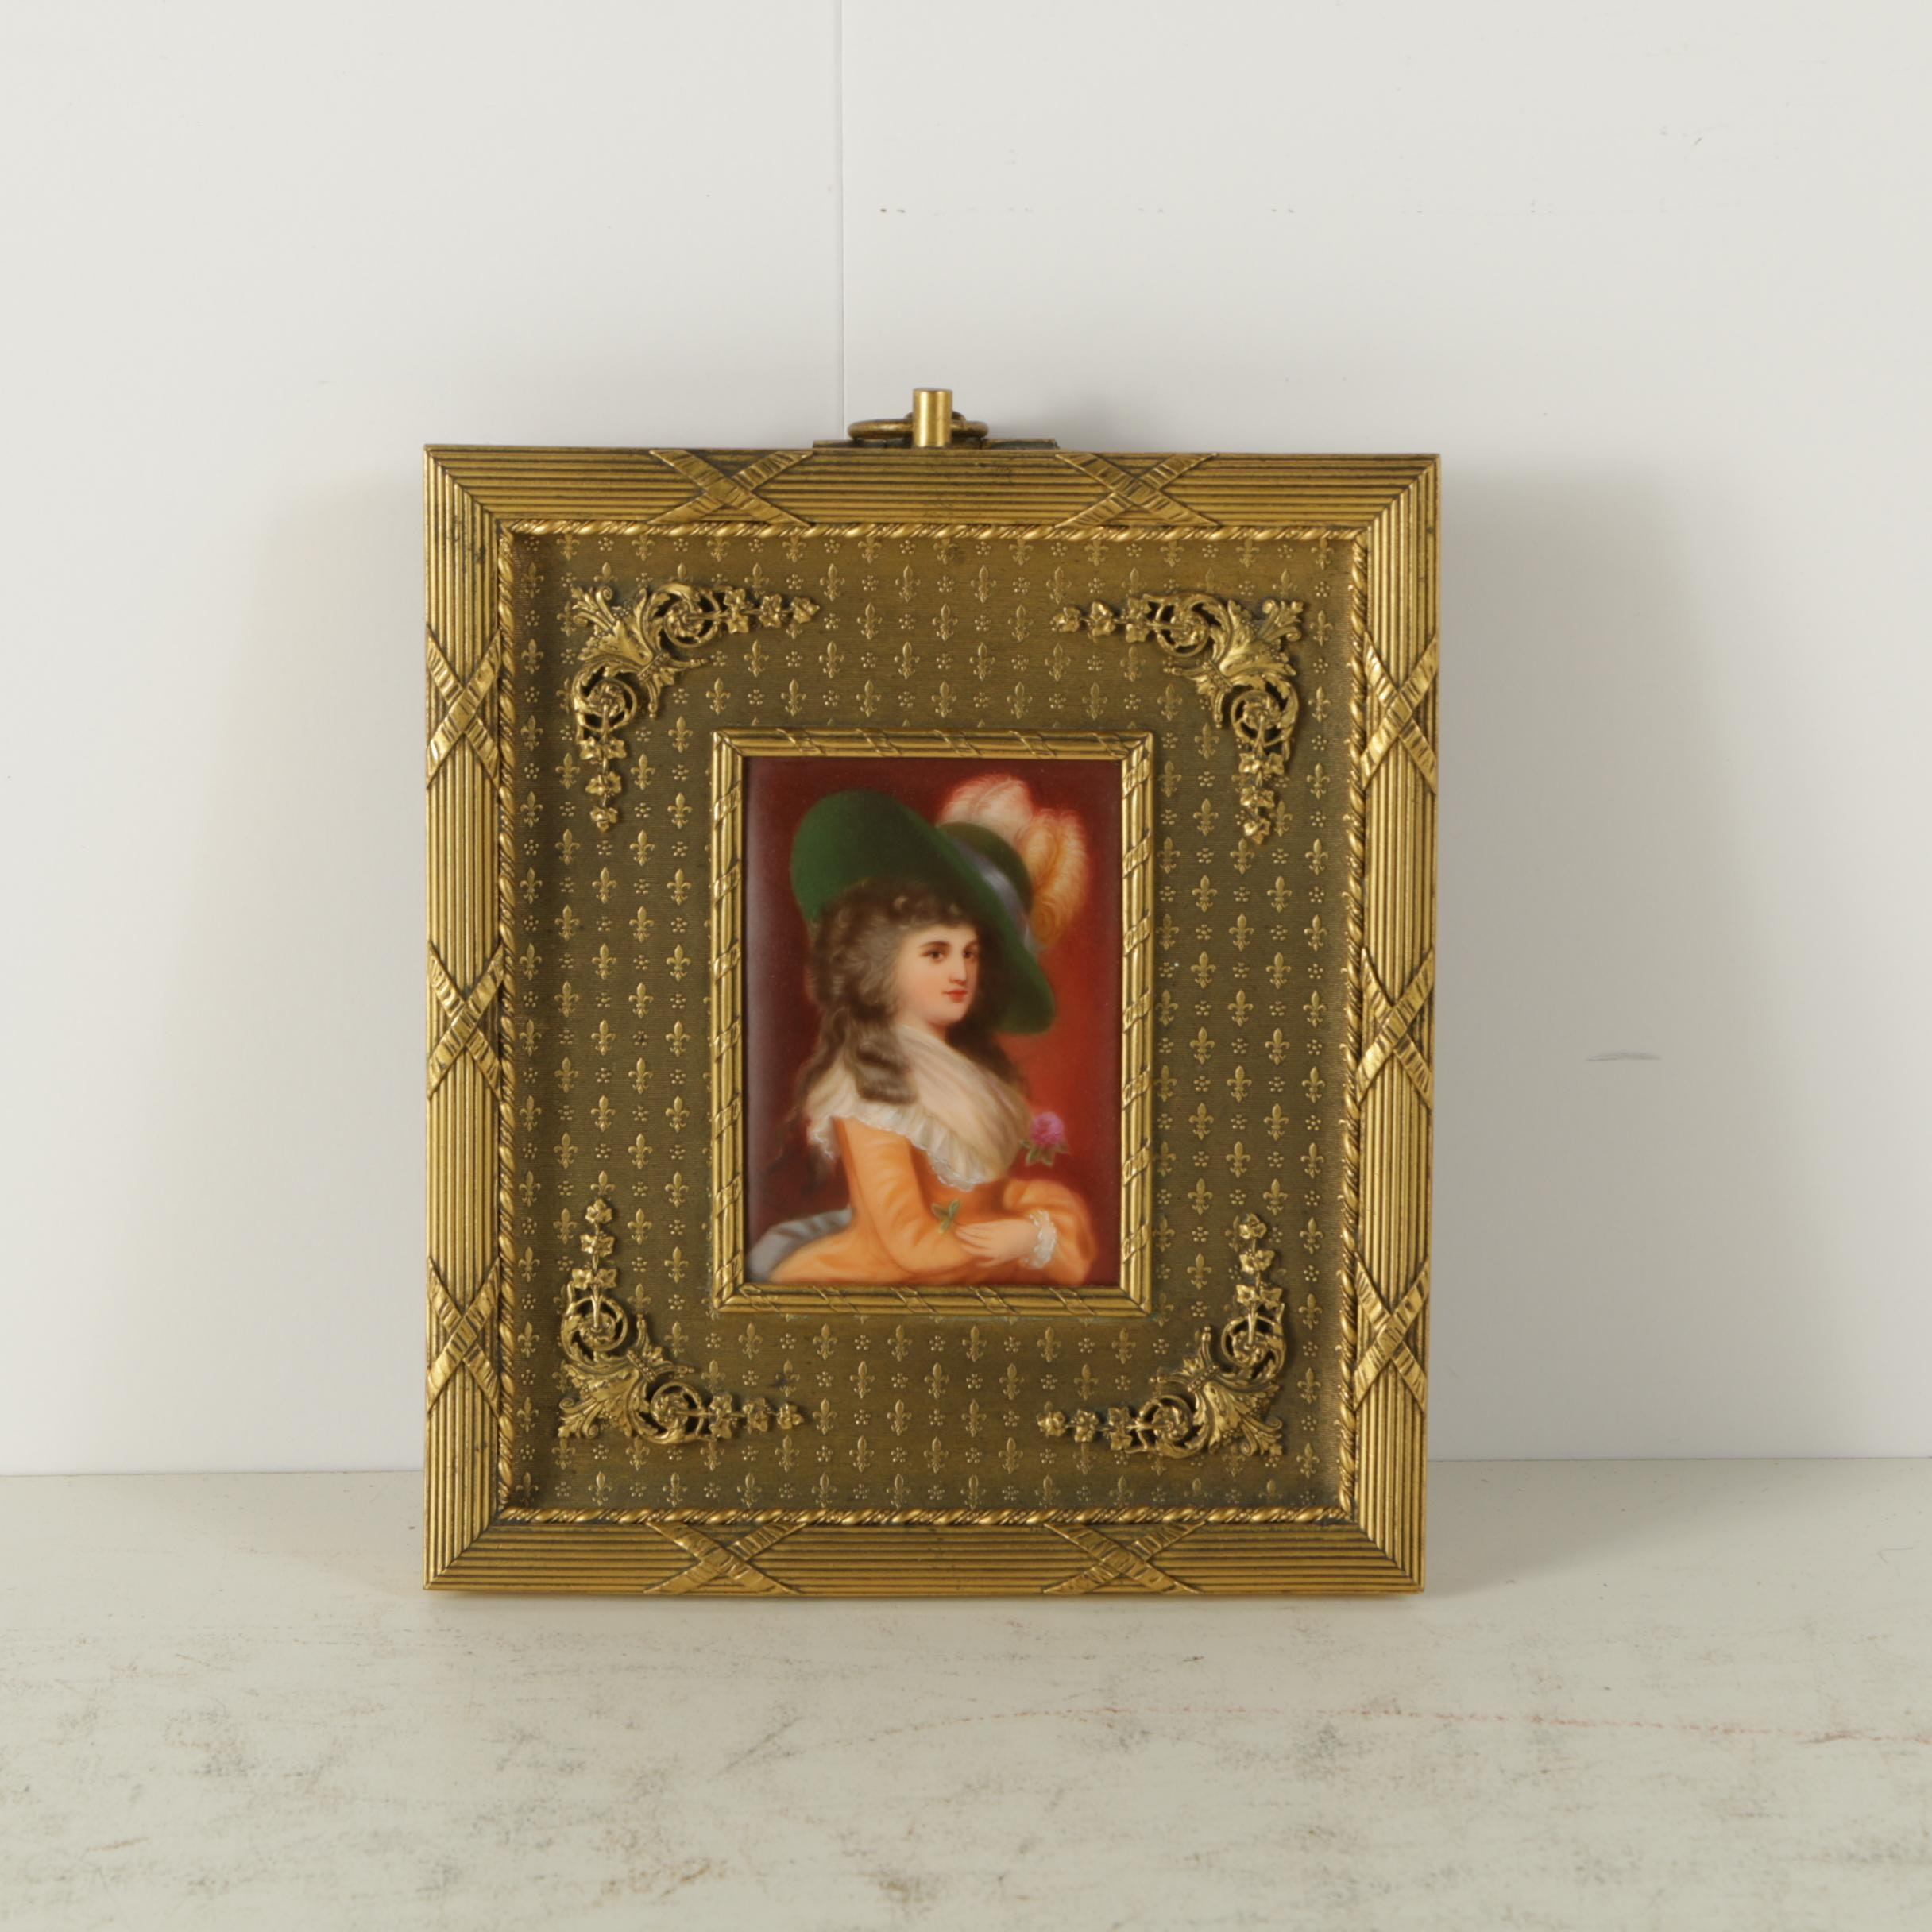 Antique Miniature Enamel Portrait on Porcelain of Woman